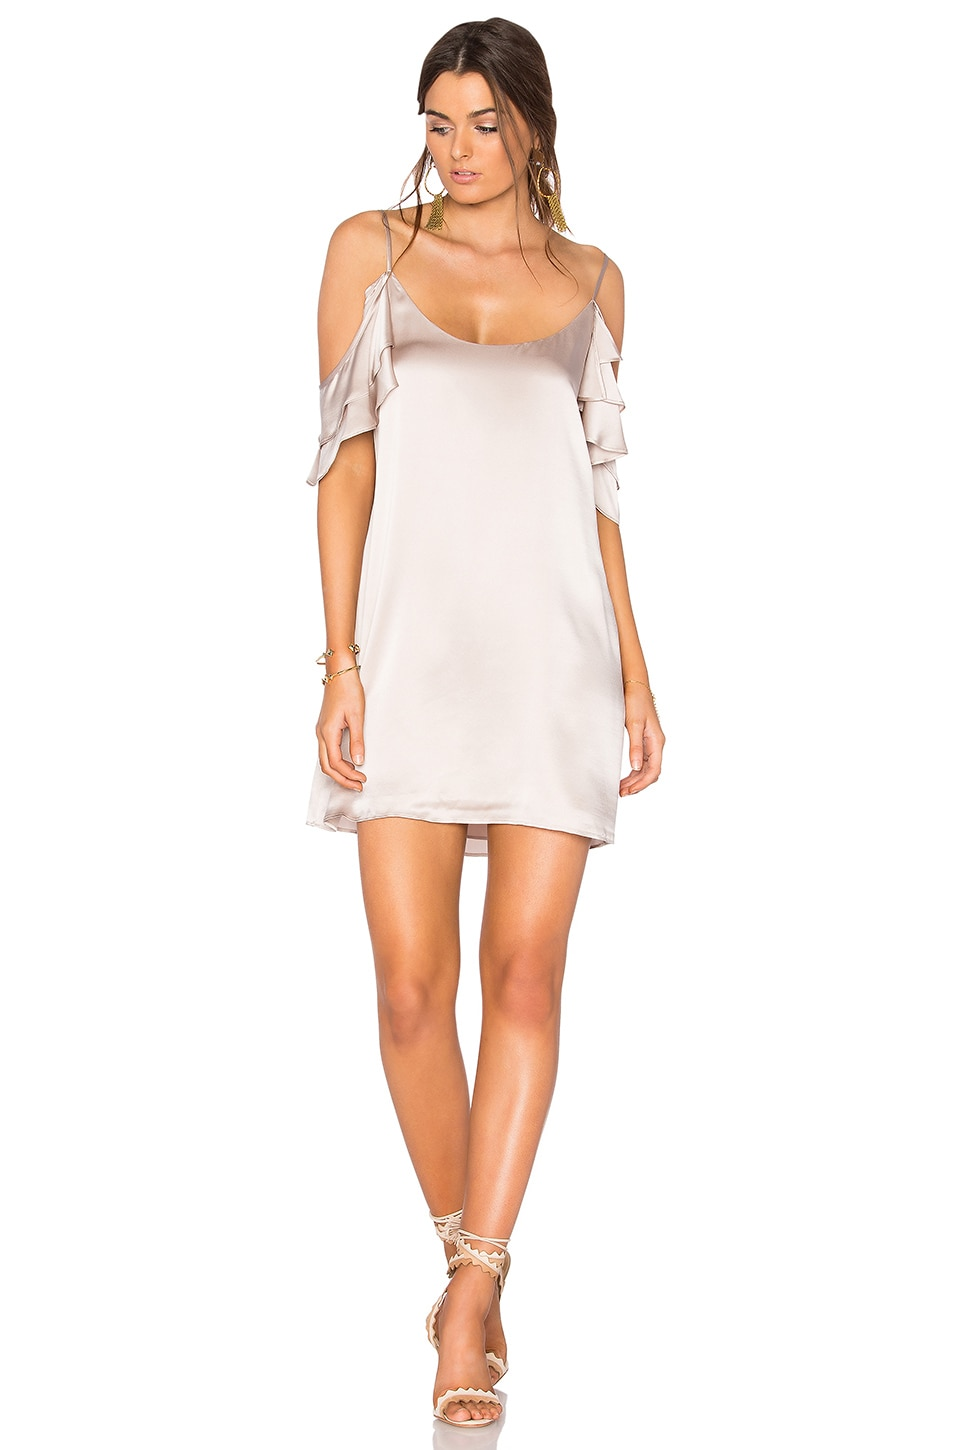 The Samantha Dress by Cami Nyc